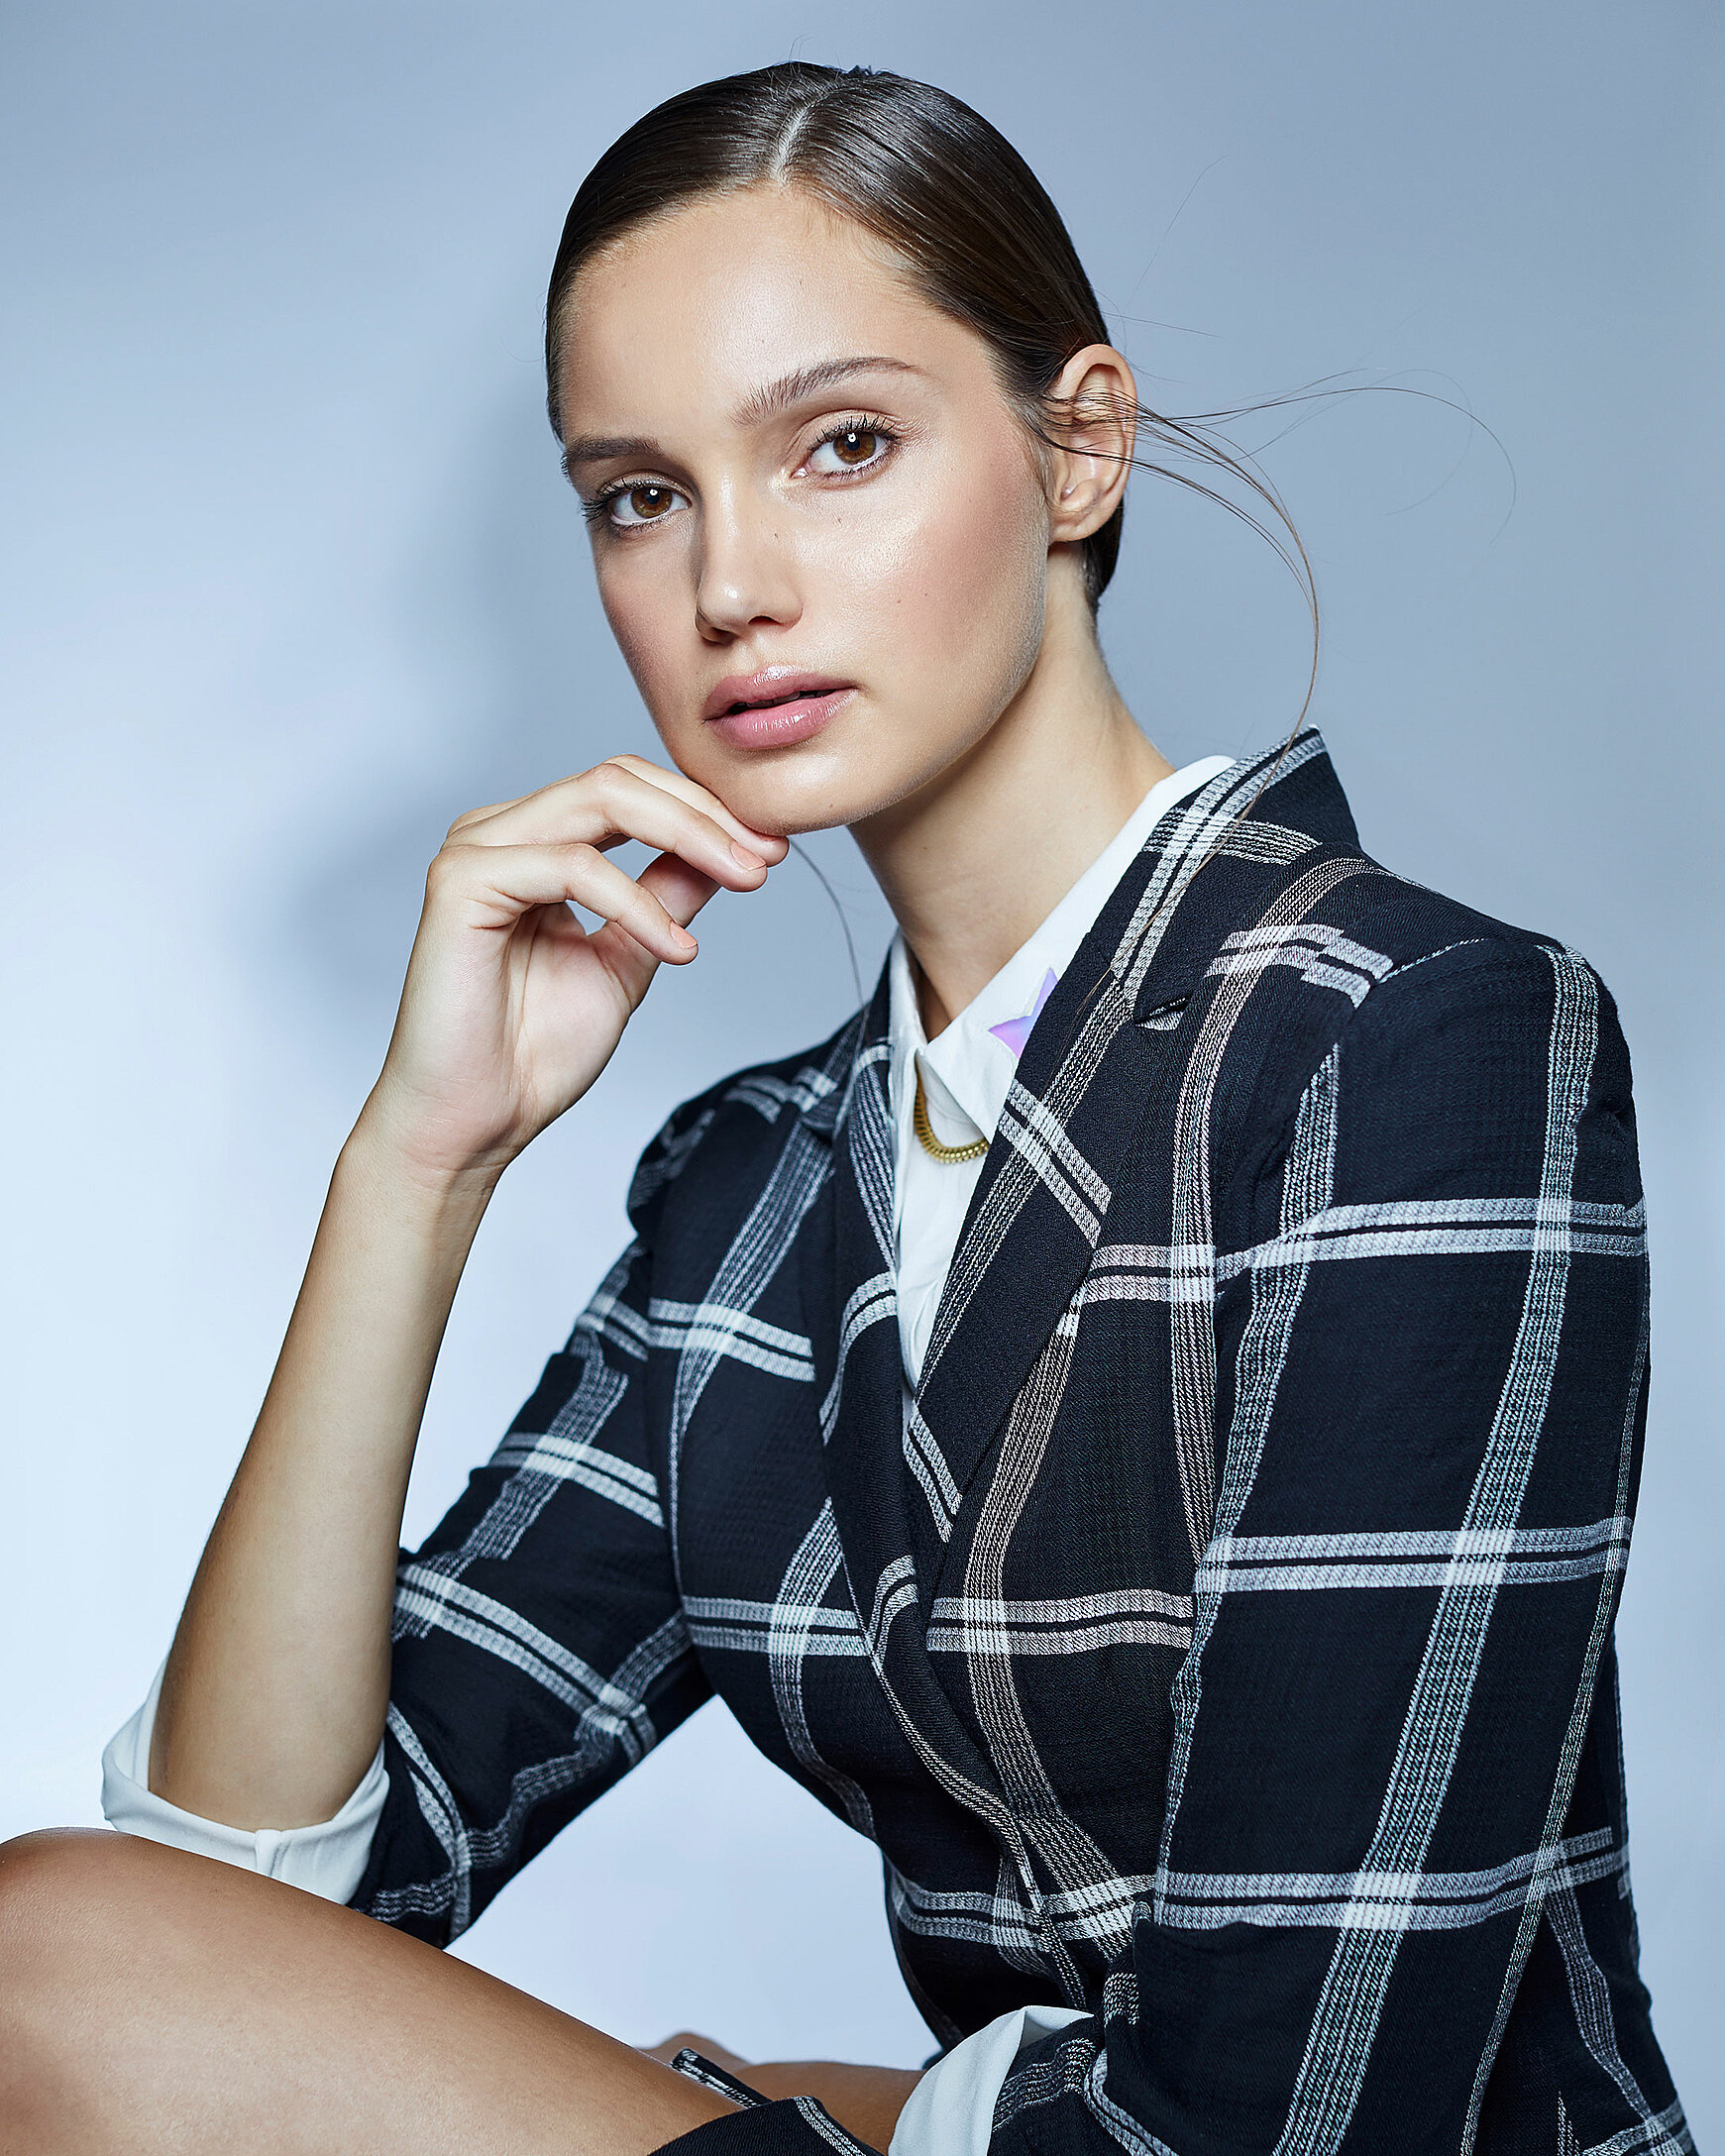 A female model who wears a checked blazer with a white blouse and sleek brown hair who sit in front of the camera